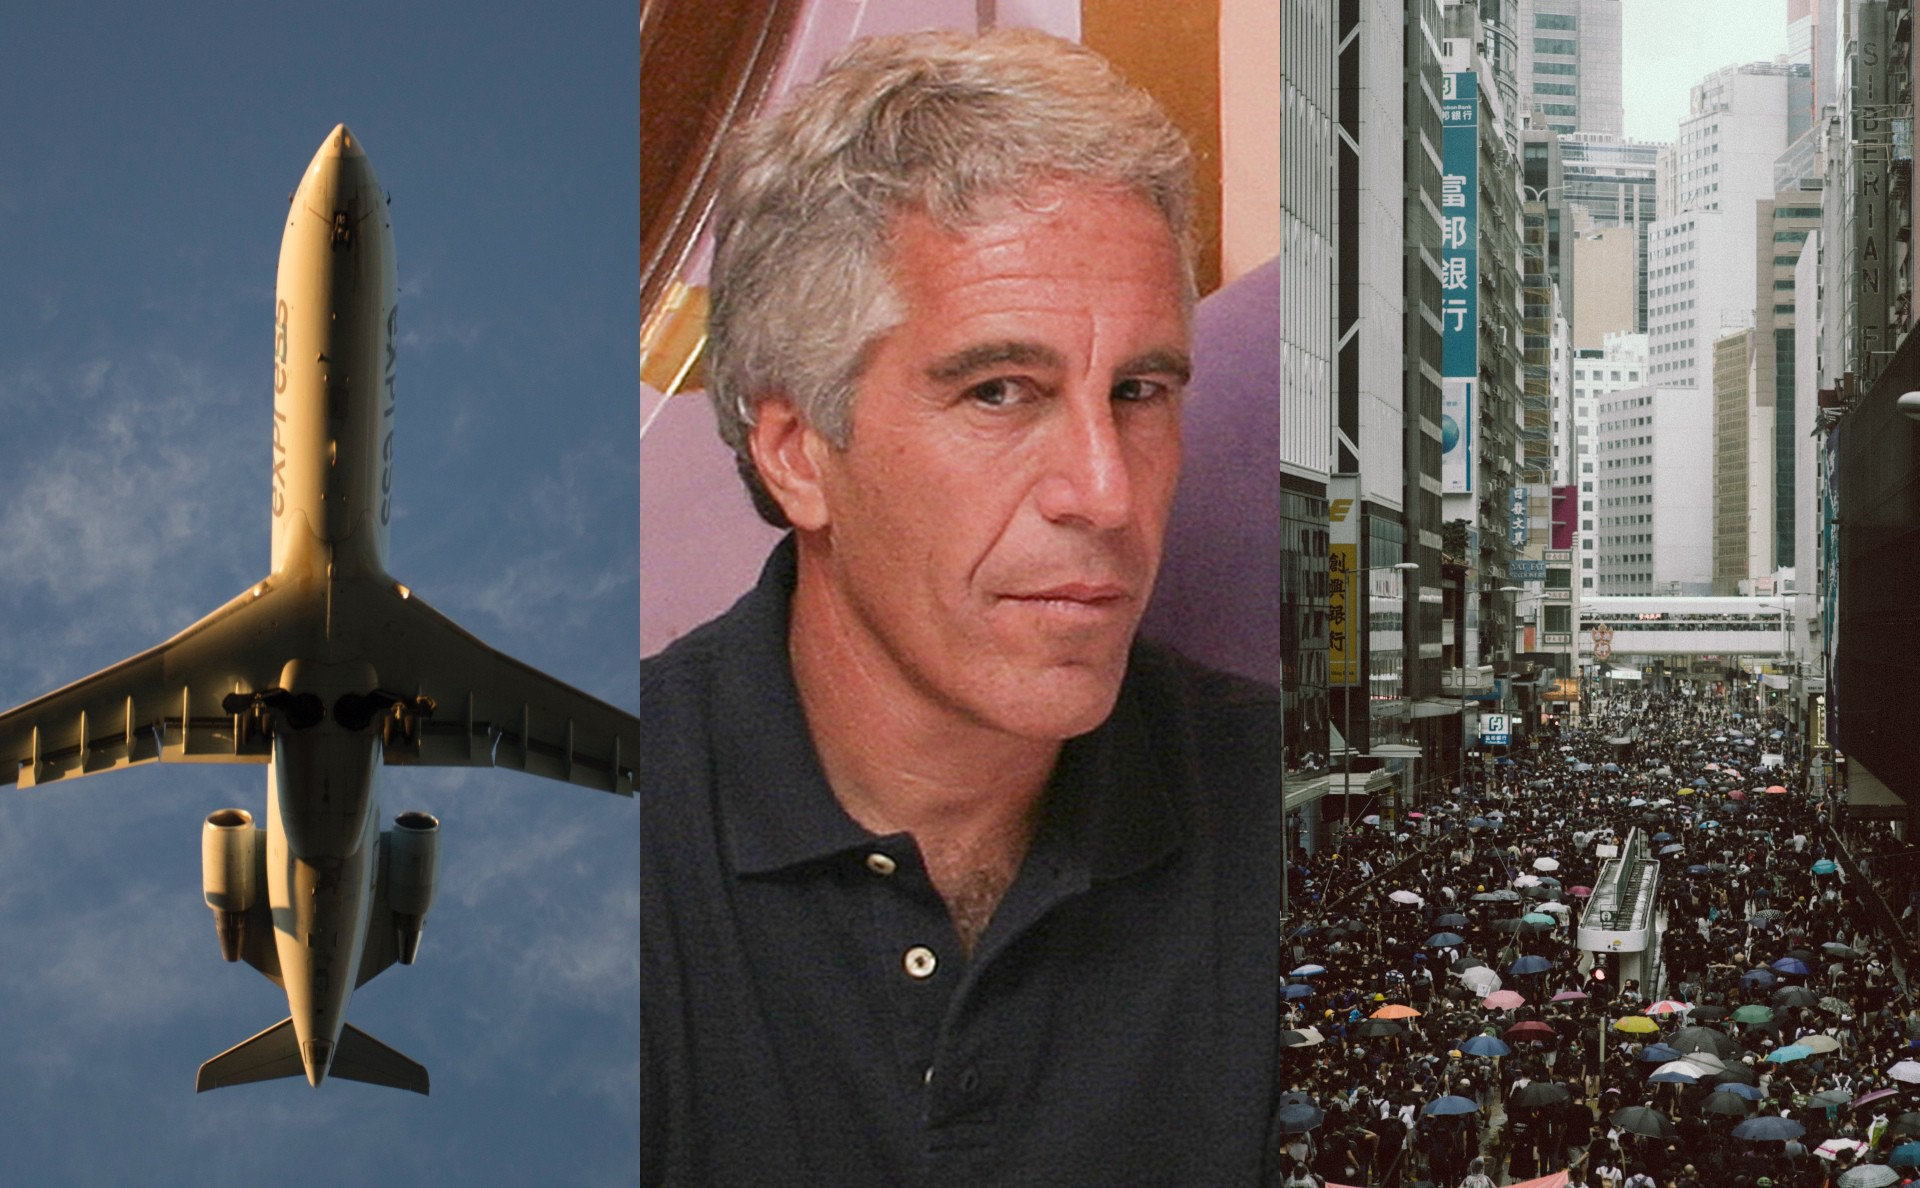 Boeing 737 Max / Jeffrey Epstein / Hong Kong Protests